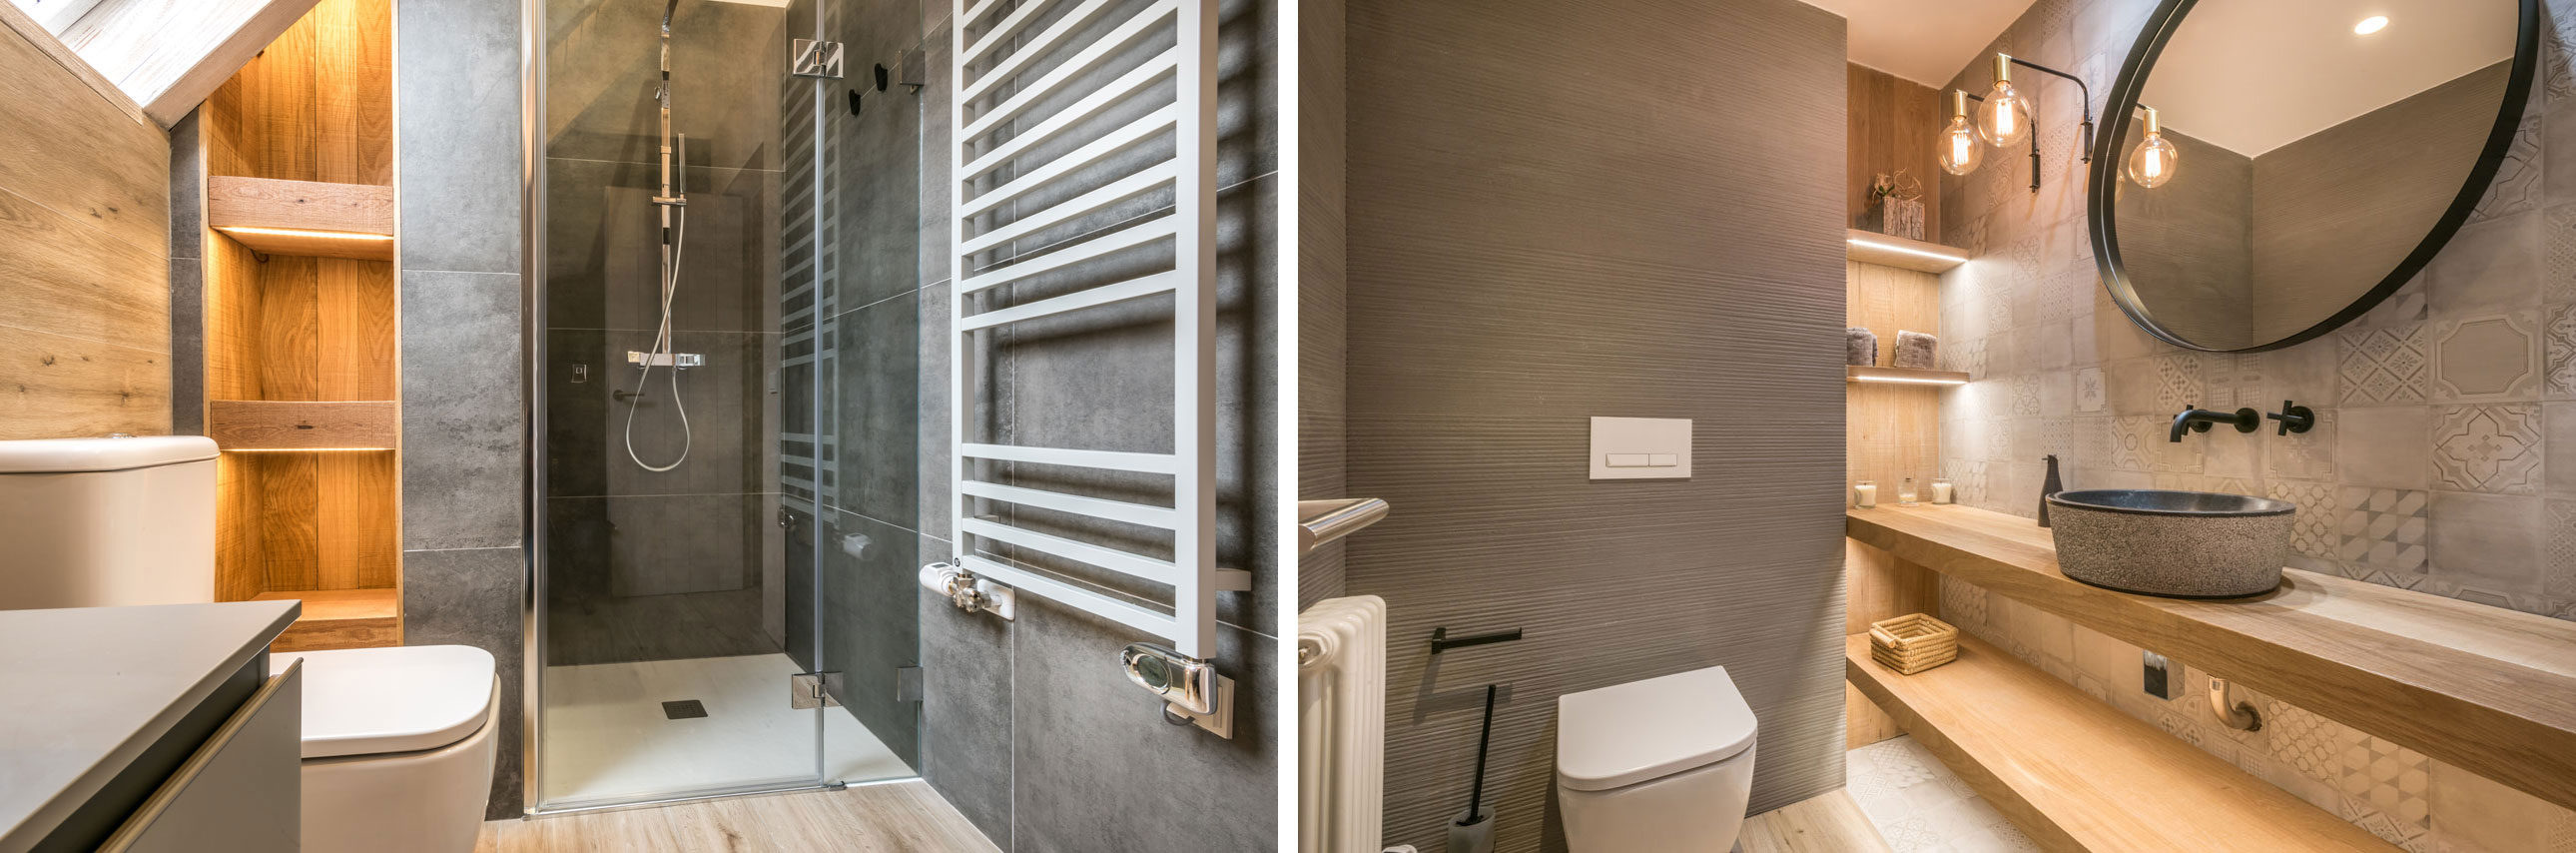 the guest bathroom near the entrance downstairs which blends wood and cotto-cement stoneware